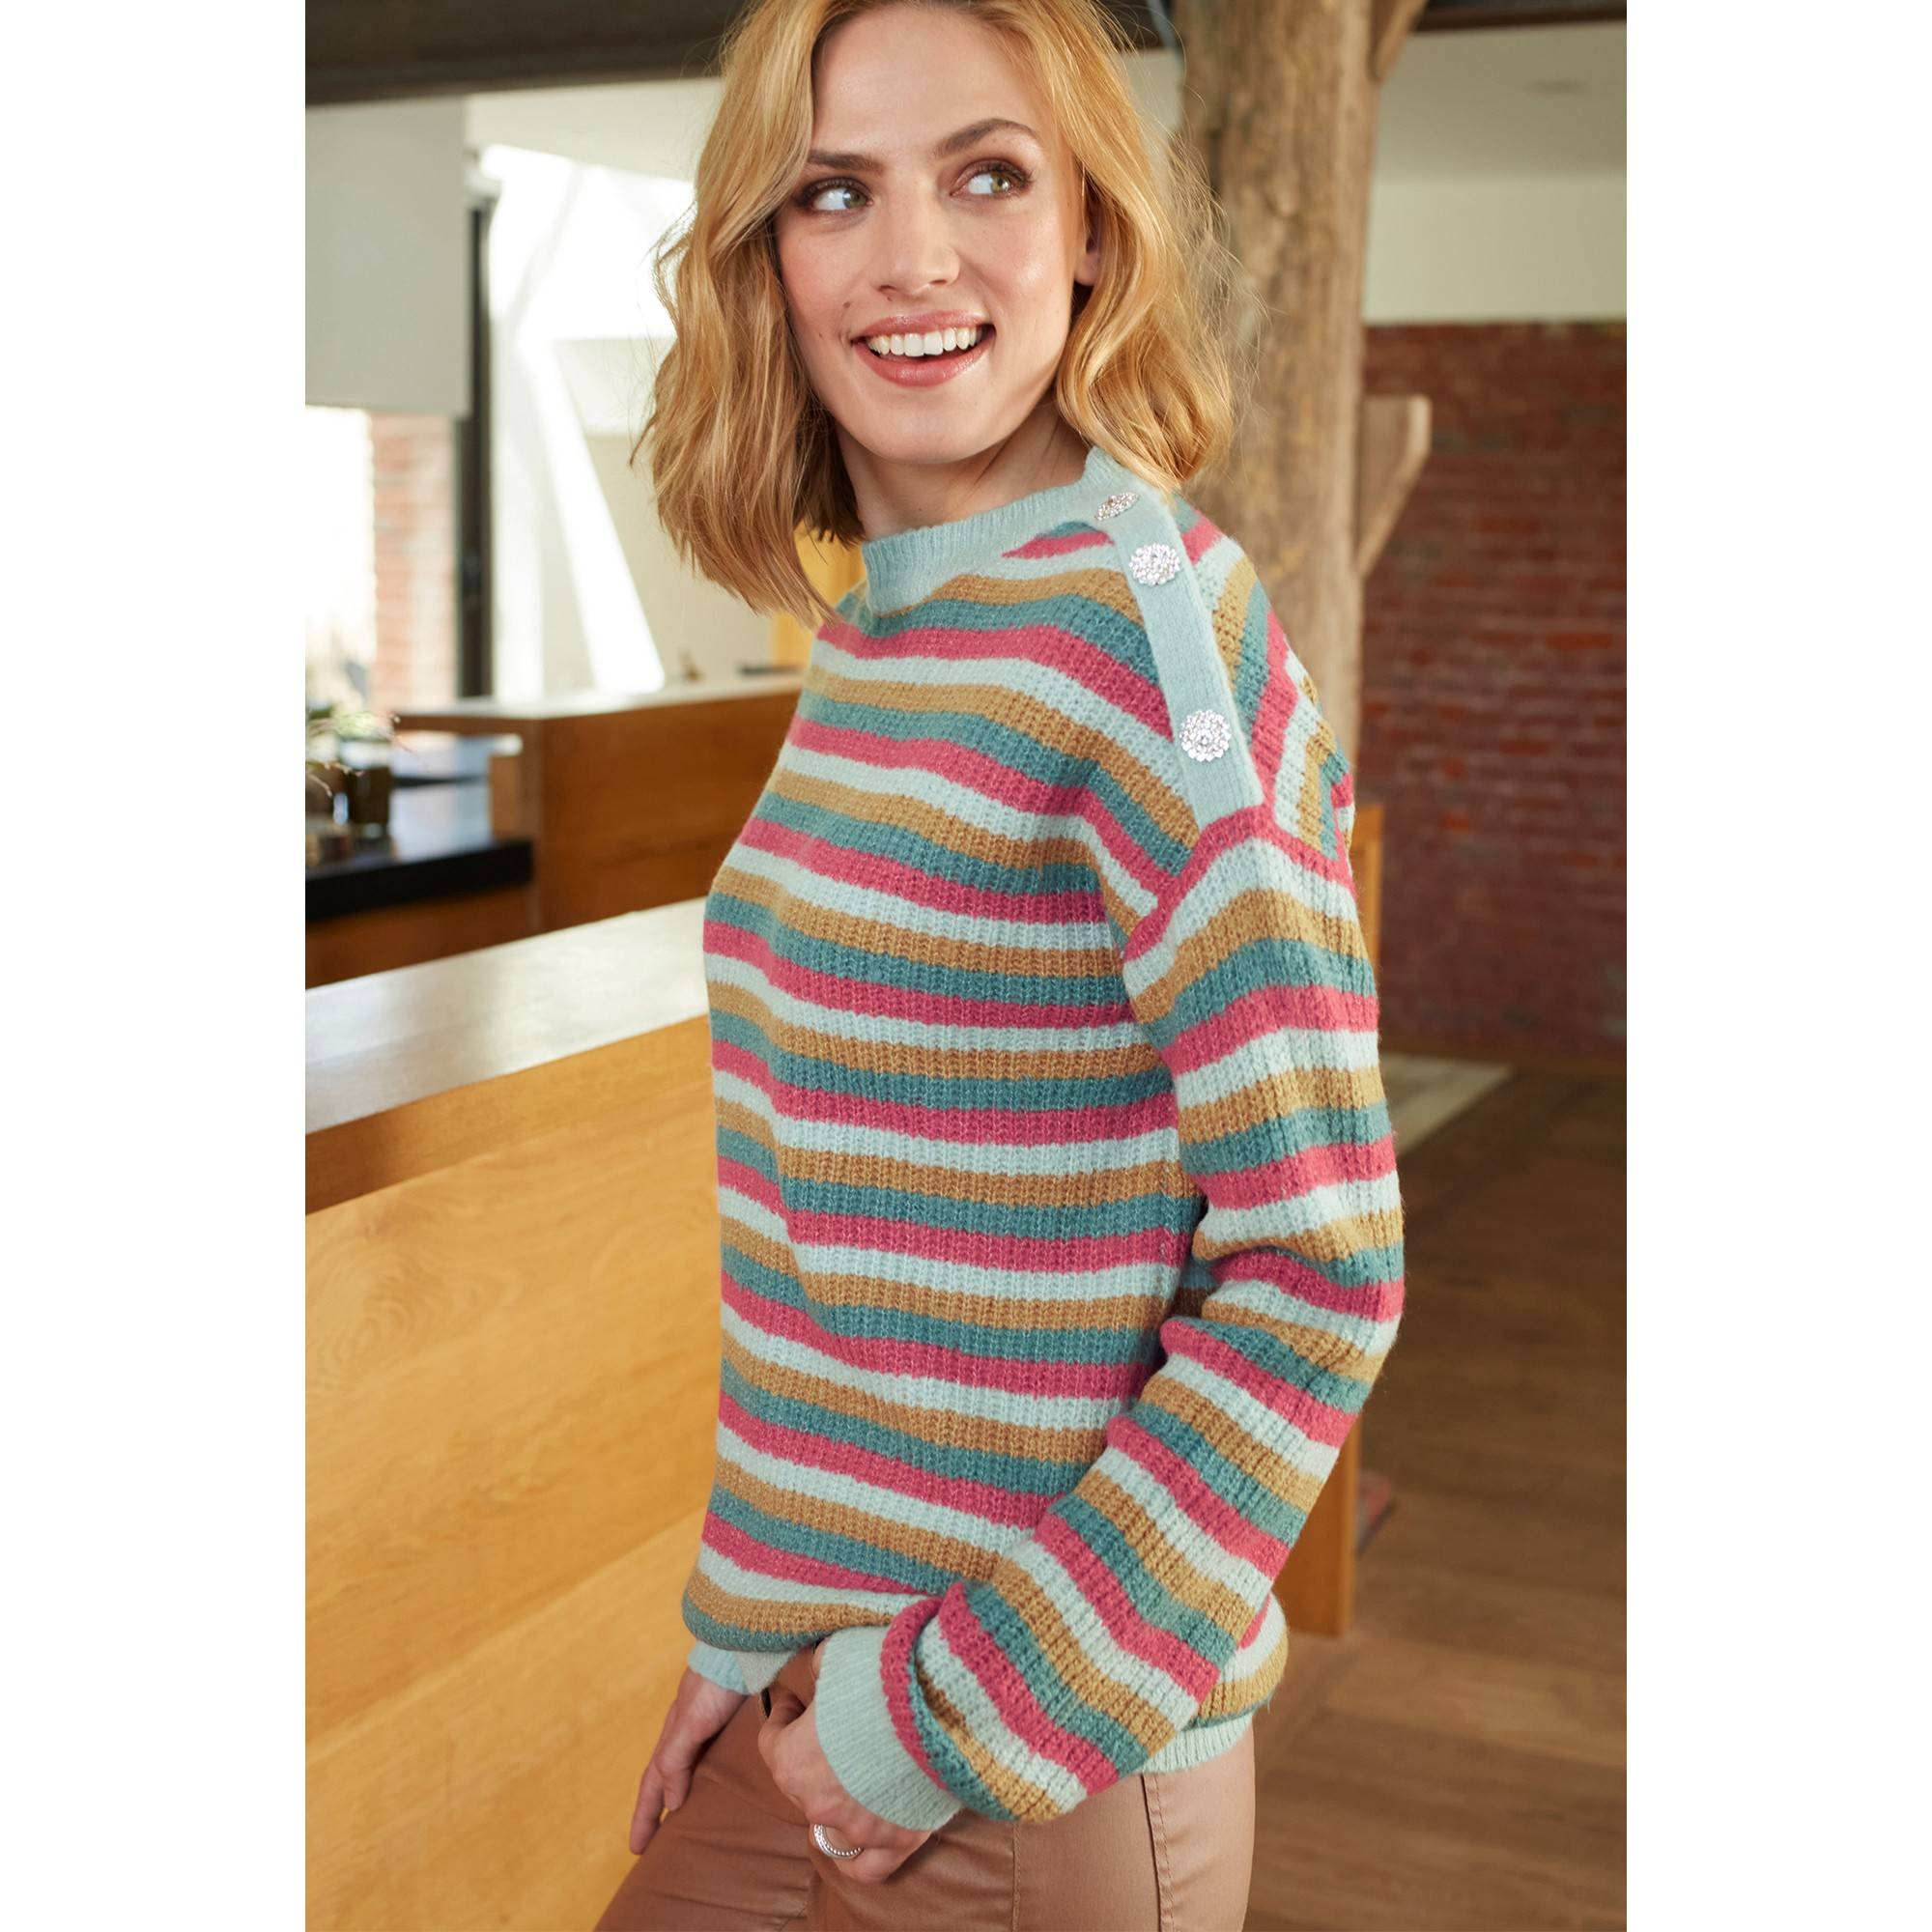 Pull rayé en maille tricot - Vert - Taille : 34,36 - Blancheporte